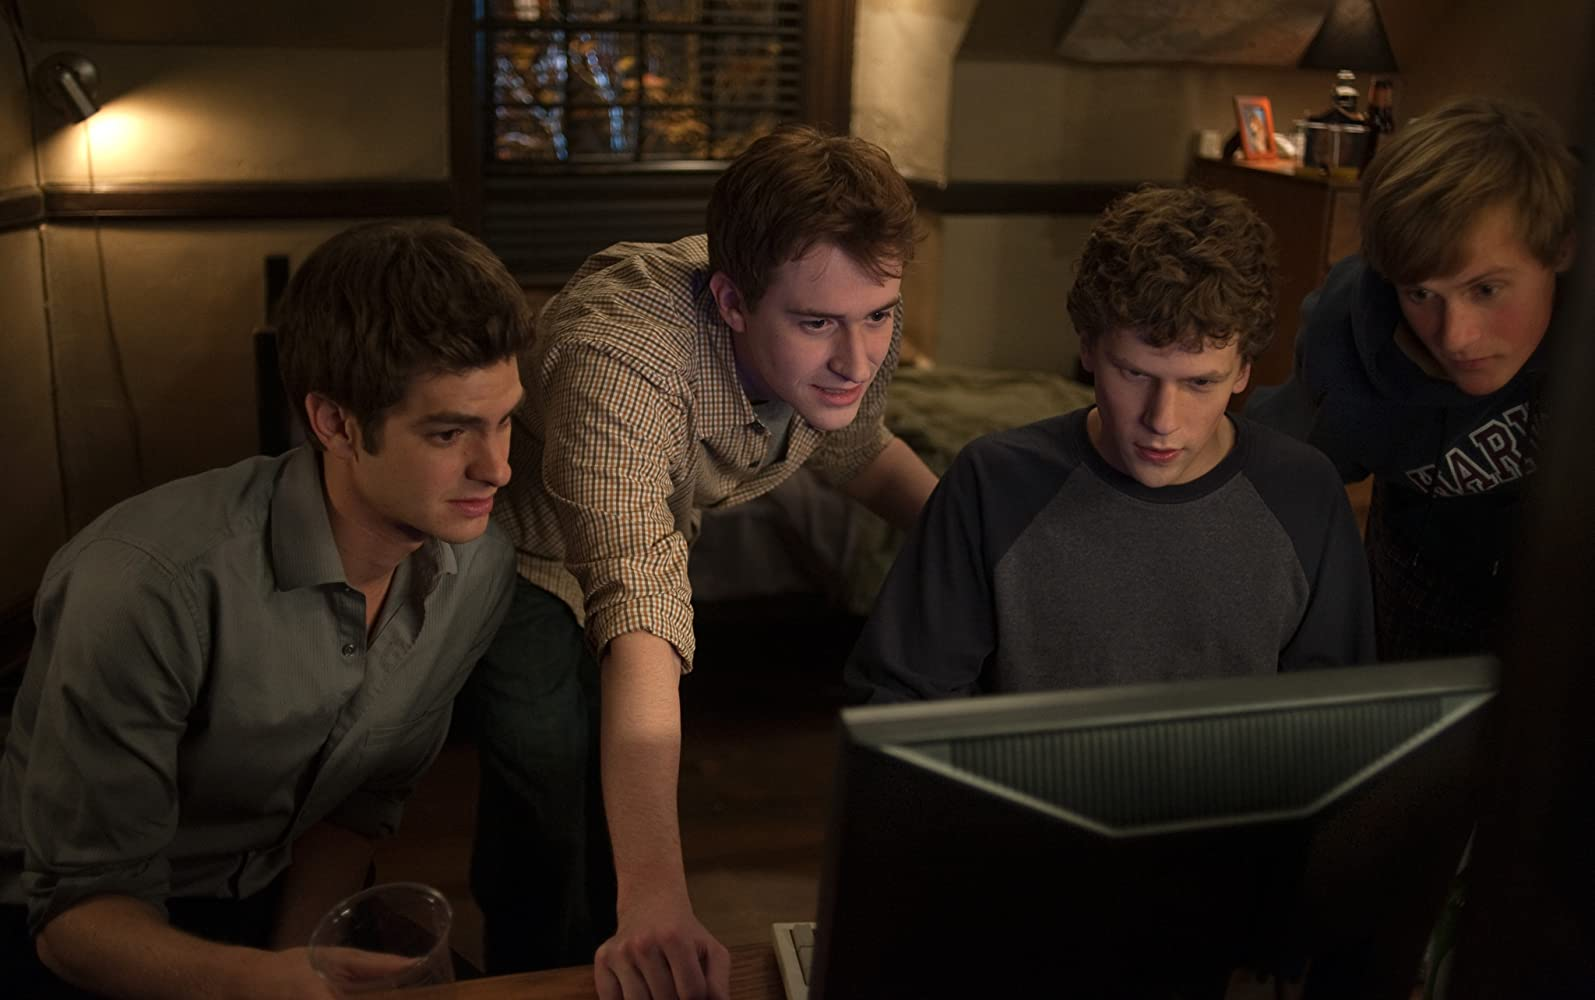 Joseph Mazzello, Jesse Eisenberg, Andrew Garfield, and Patrick Mapel in The Social Network (2010)